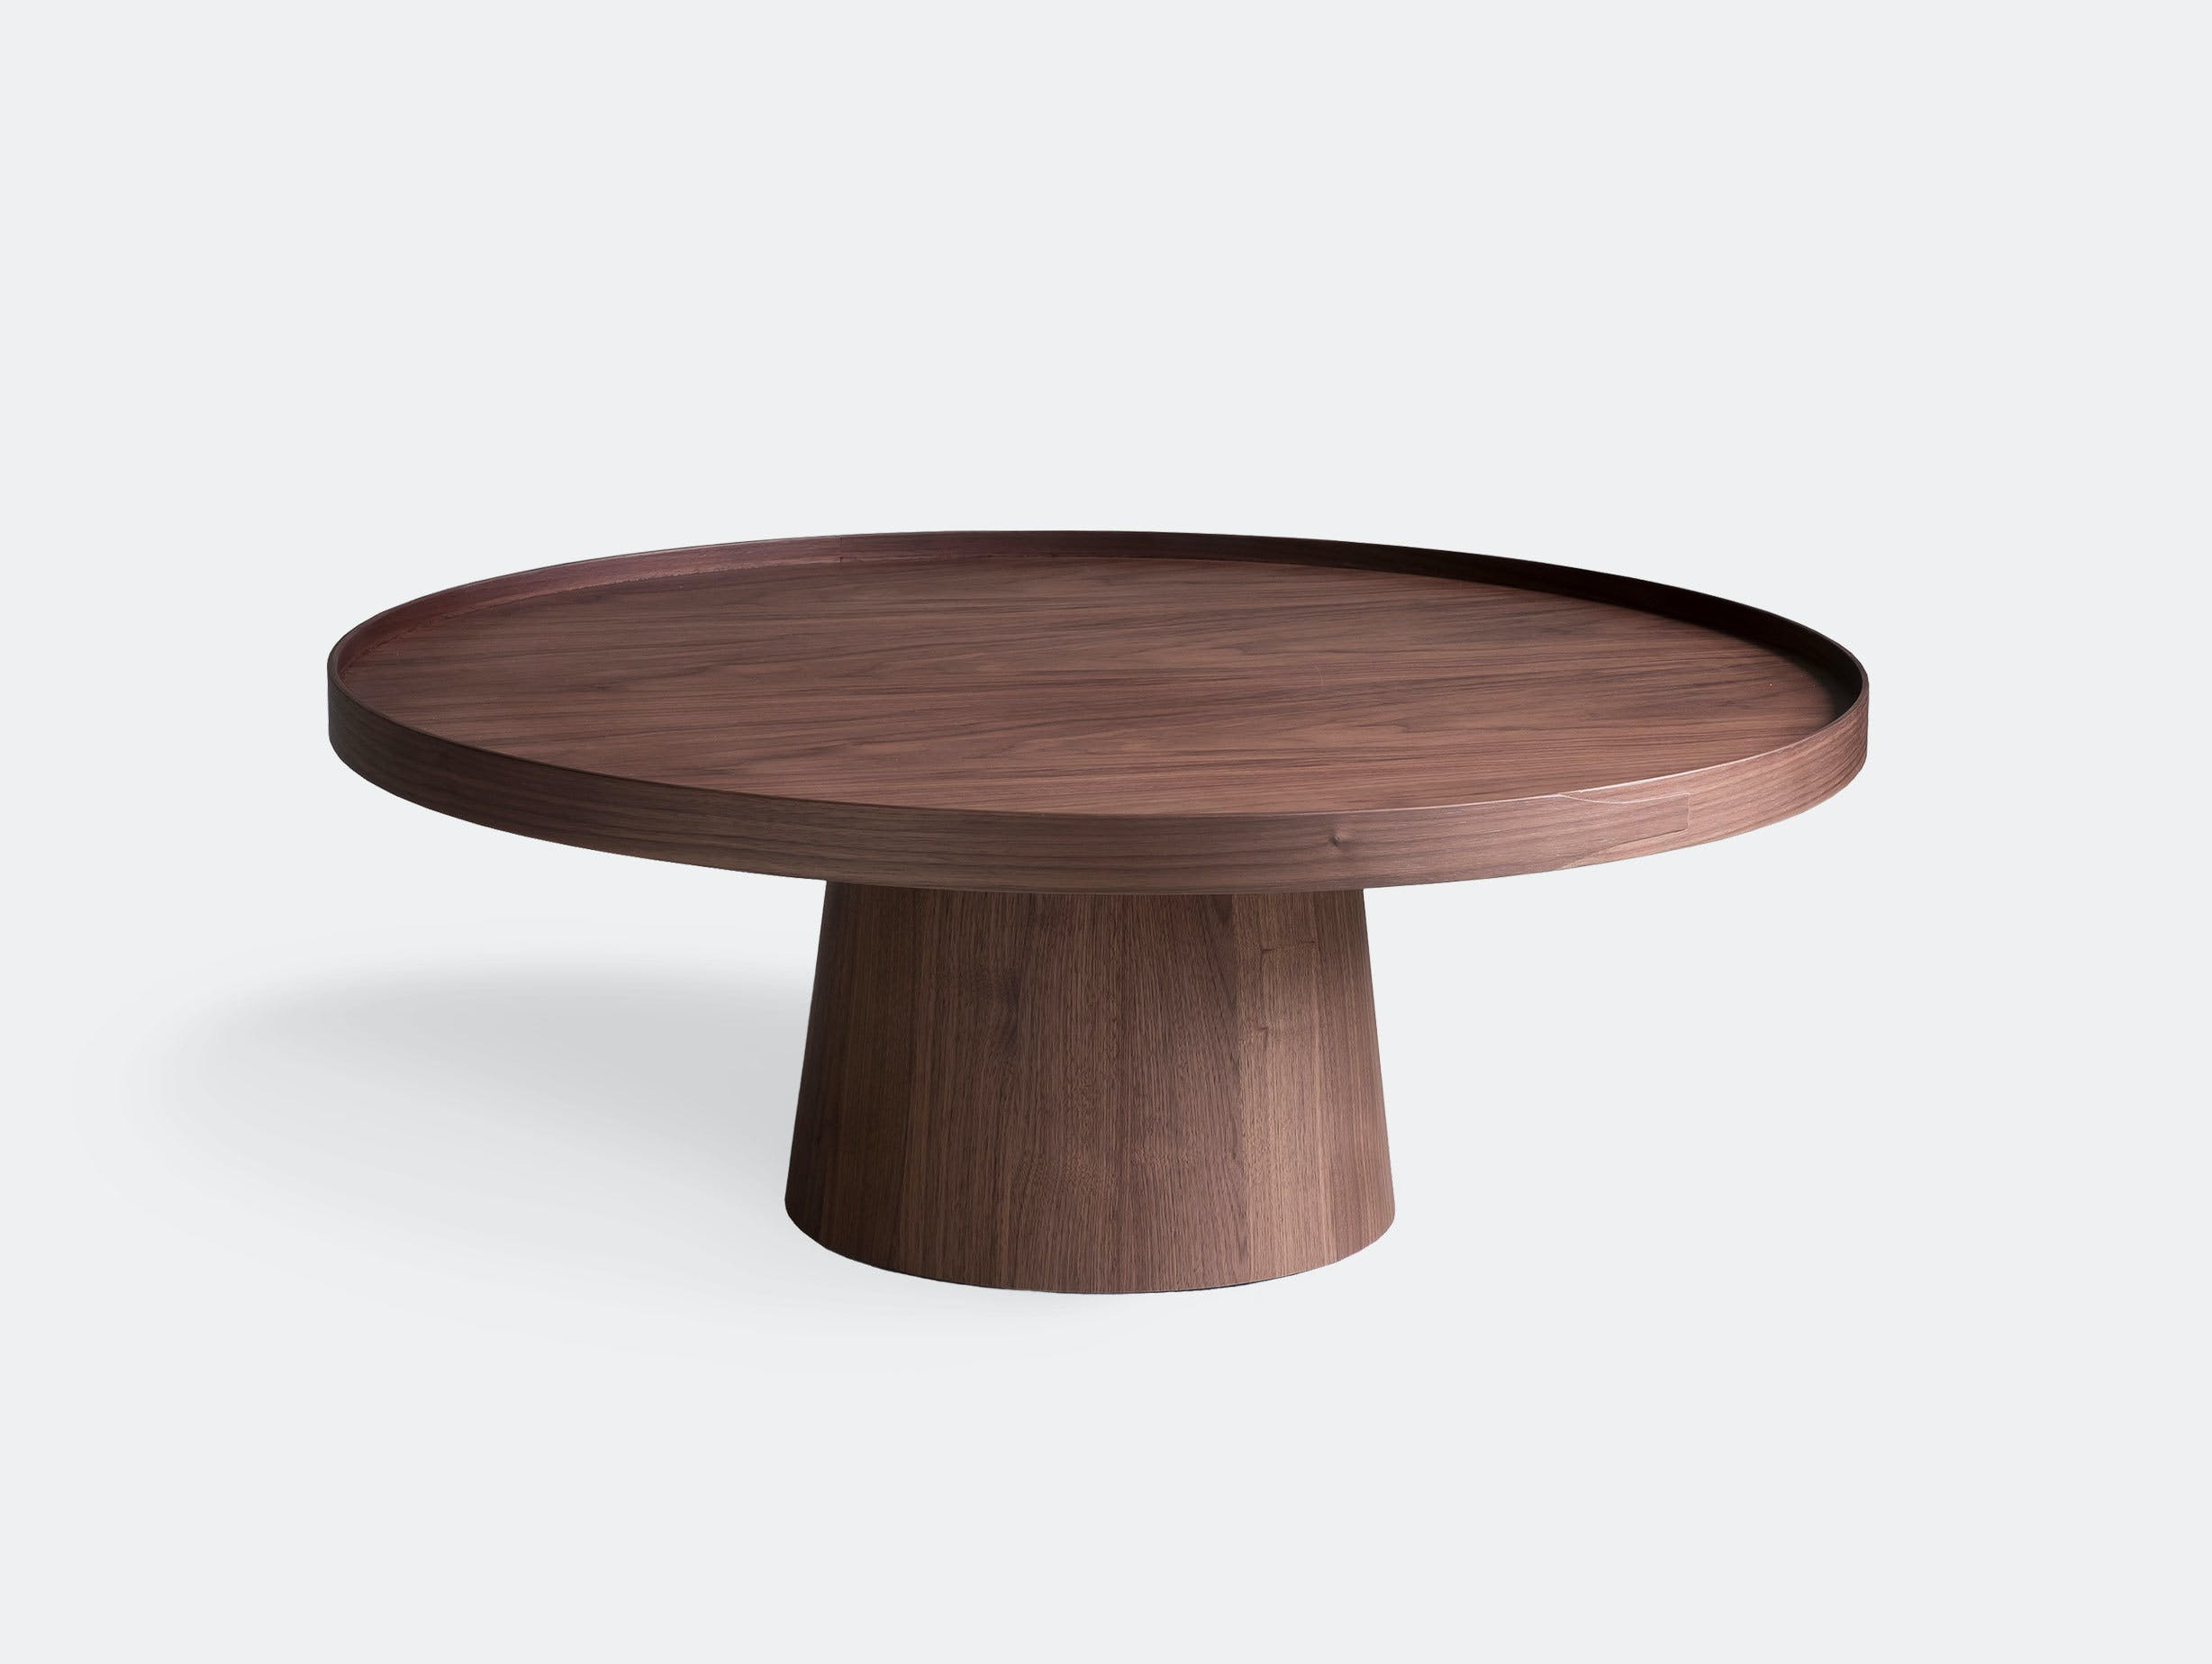 Pinch Rodan Coffee Table Walnut Russell Pinch Oona Bannon